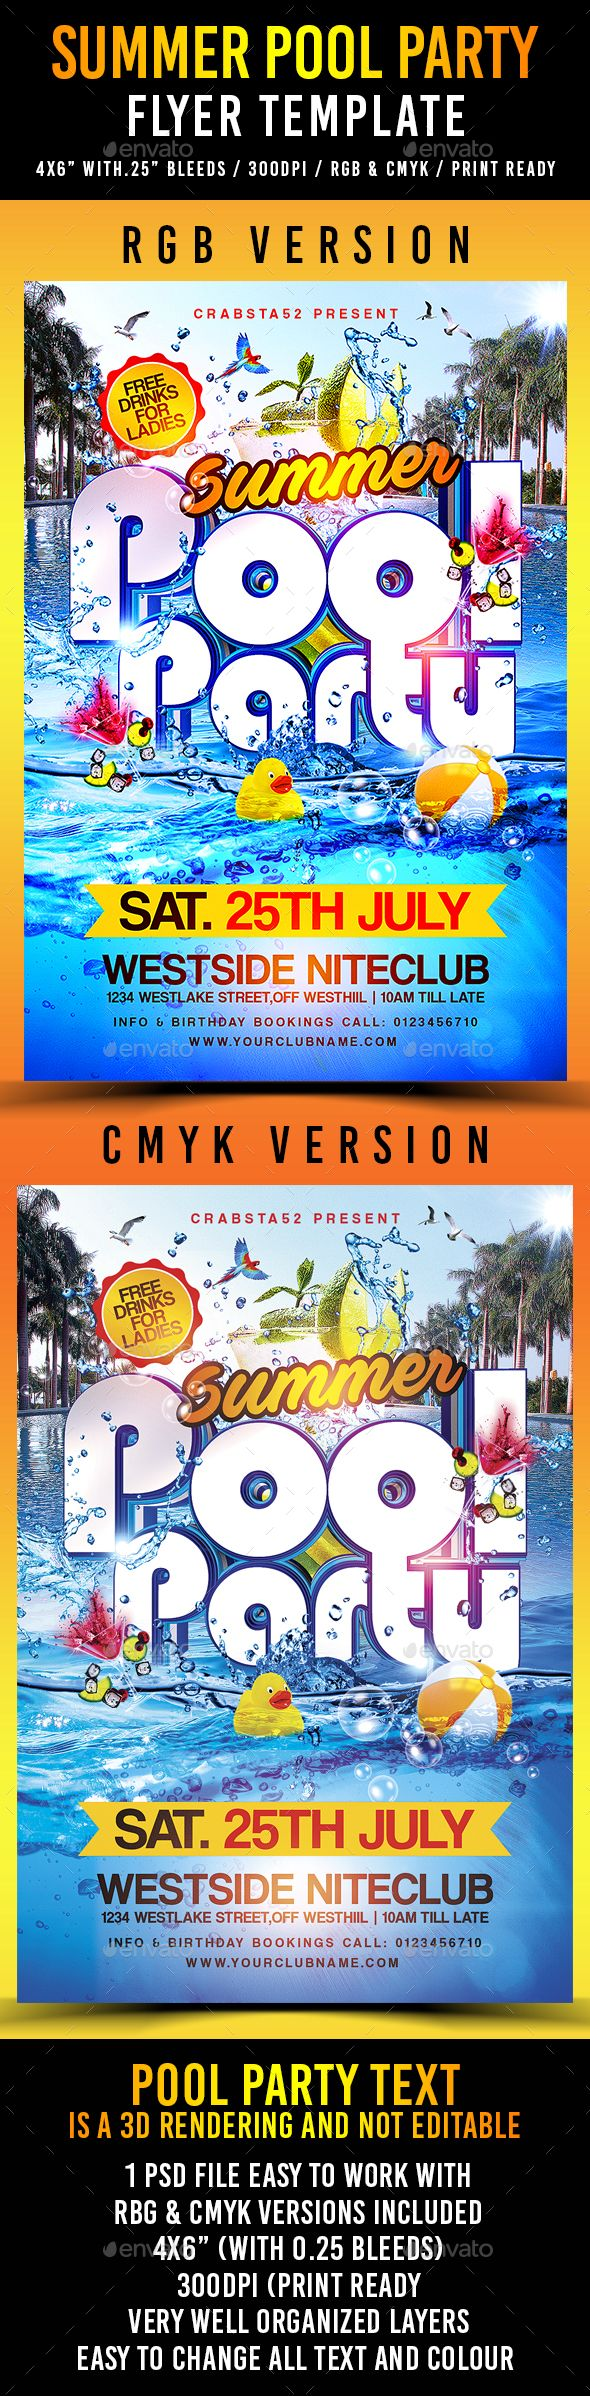 Summer Pool Party Flyer Template PSD. Download Here:  Http://graphicriver.net/item/summer Pool Party Flyer Template /16357371?refu003dksioks